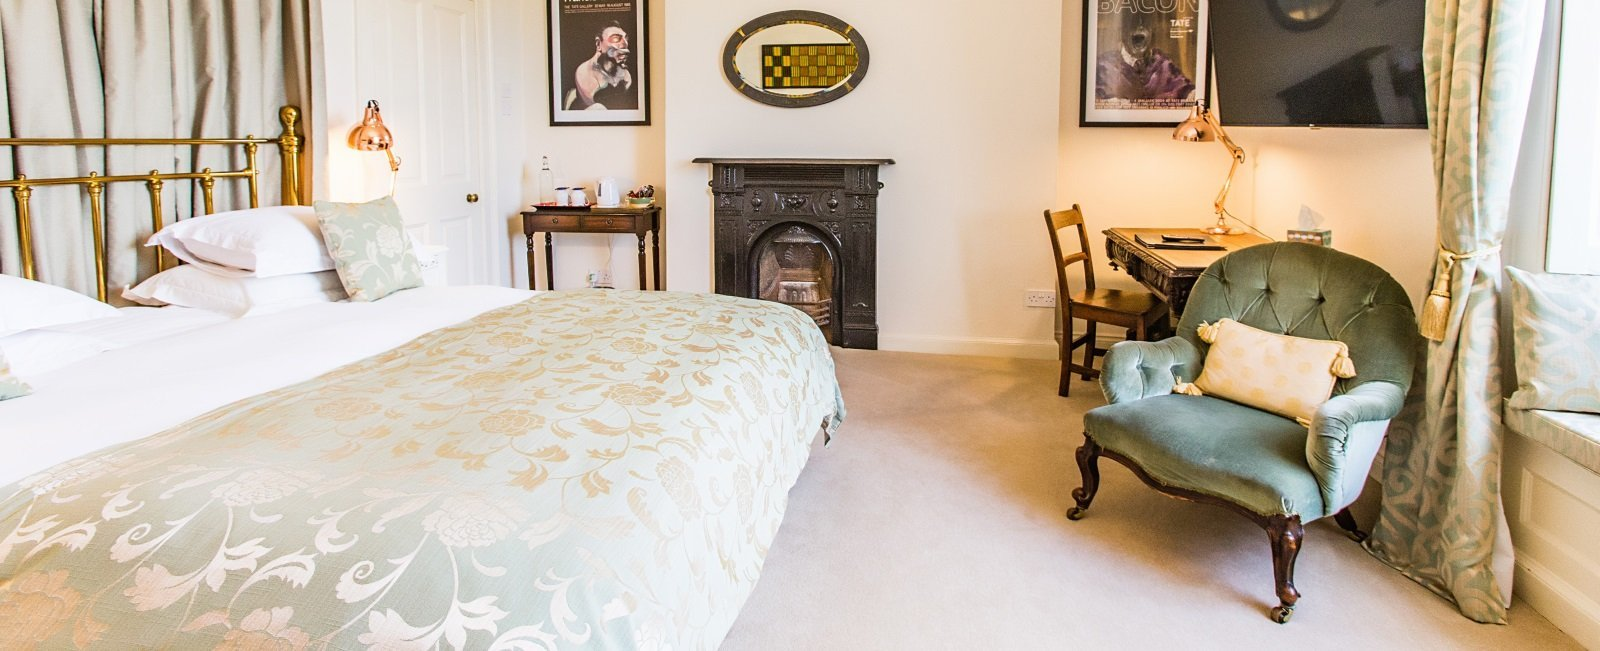 The Moda House B&B, Chipping Sodbury, Bristol